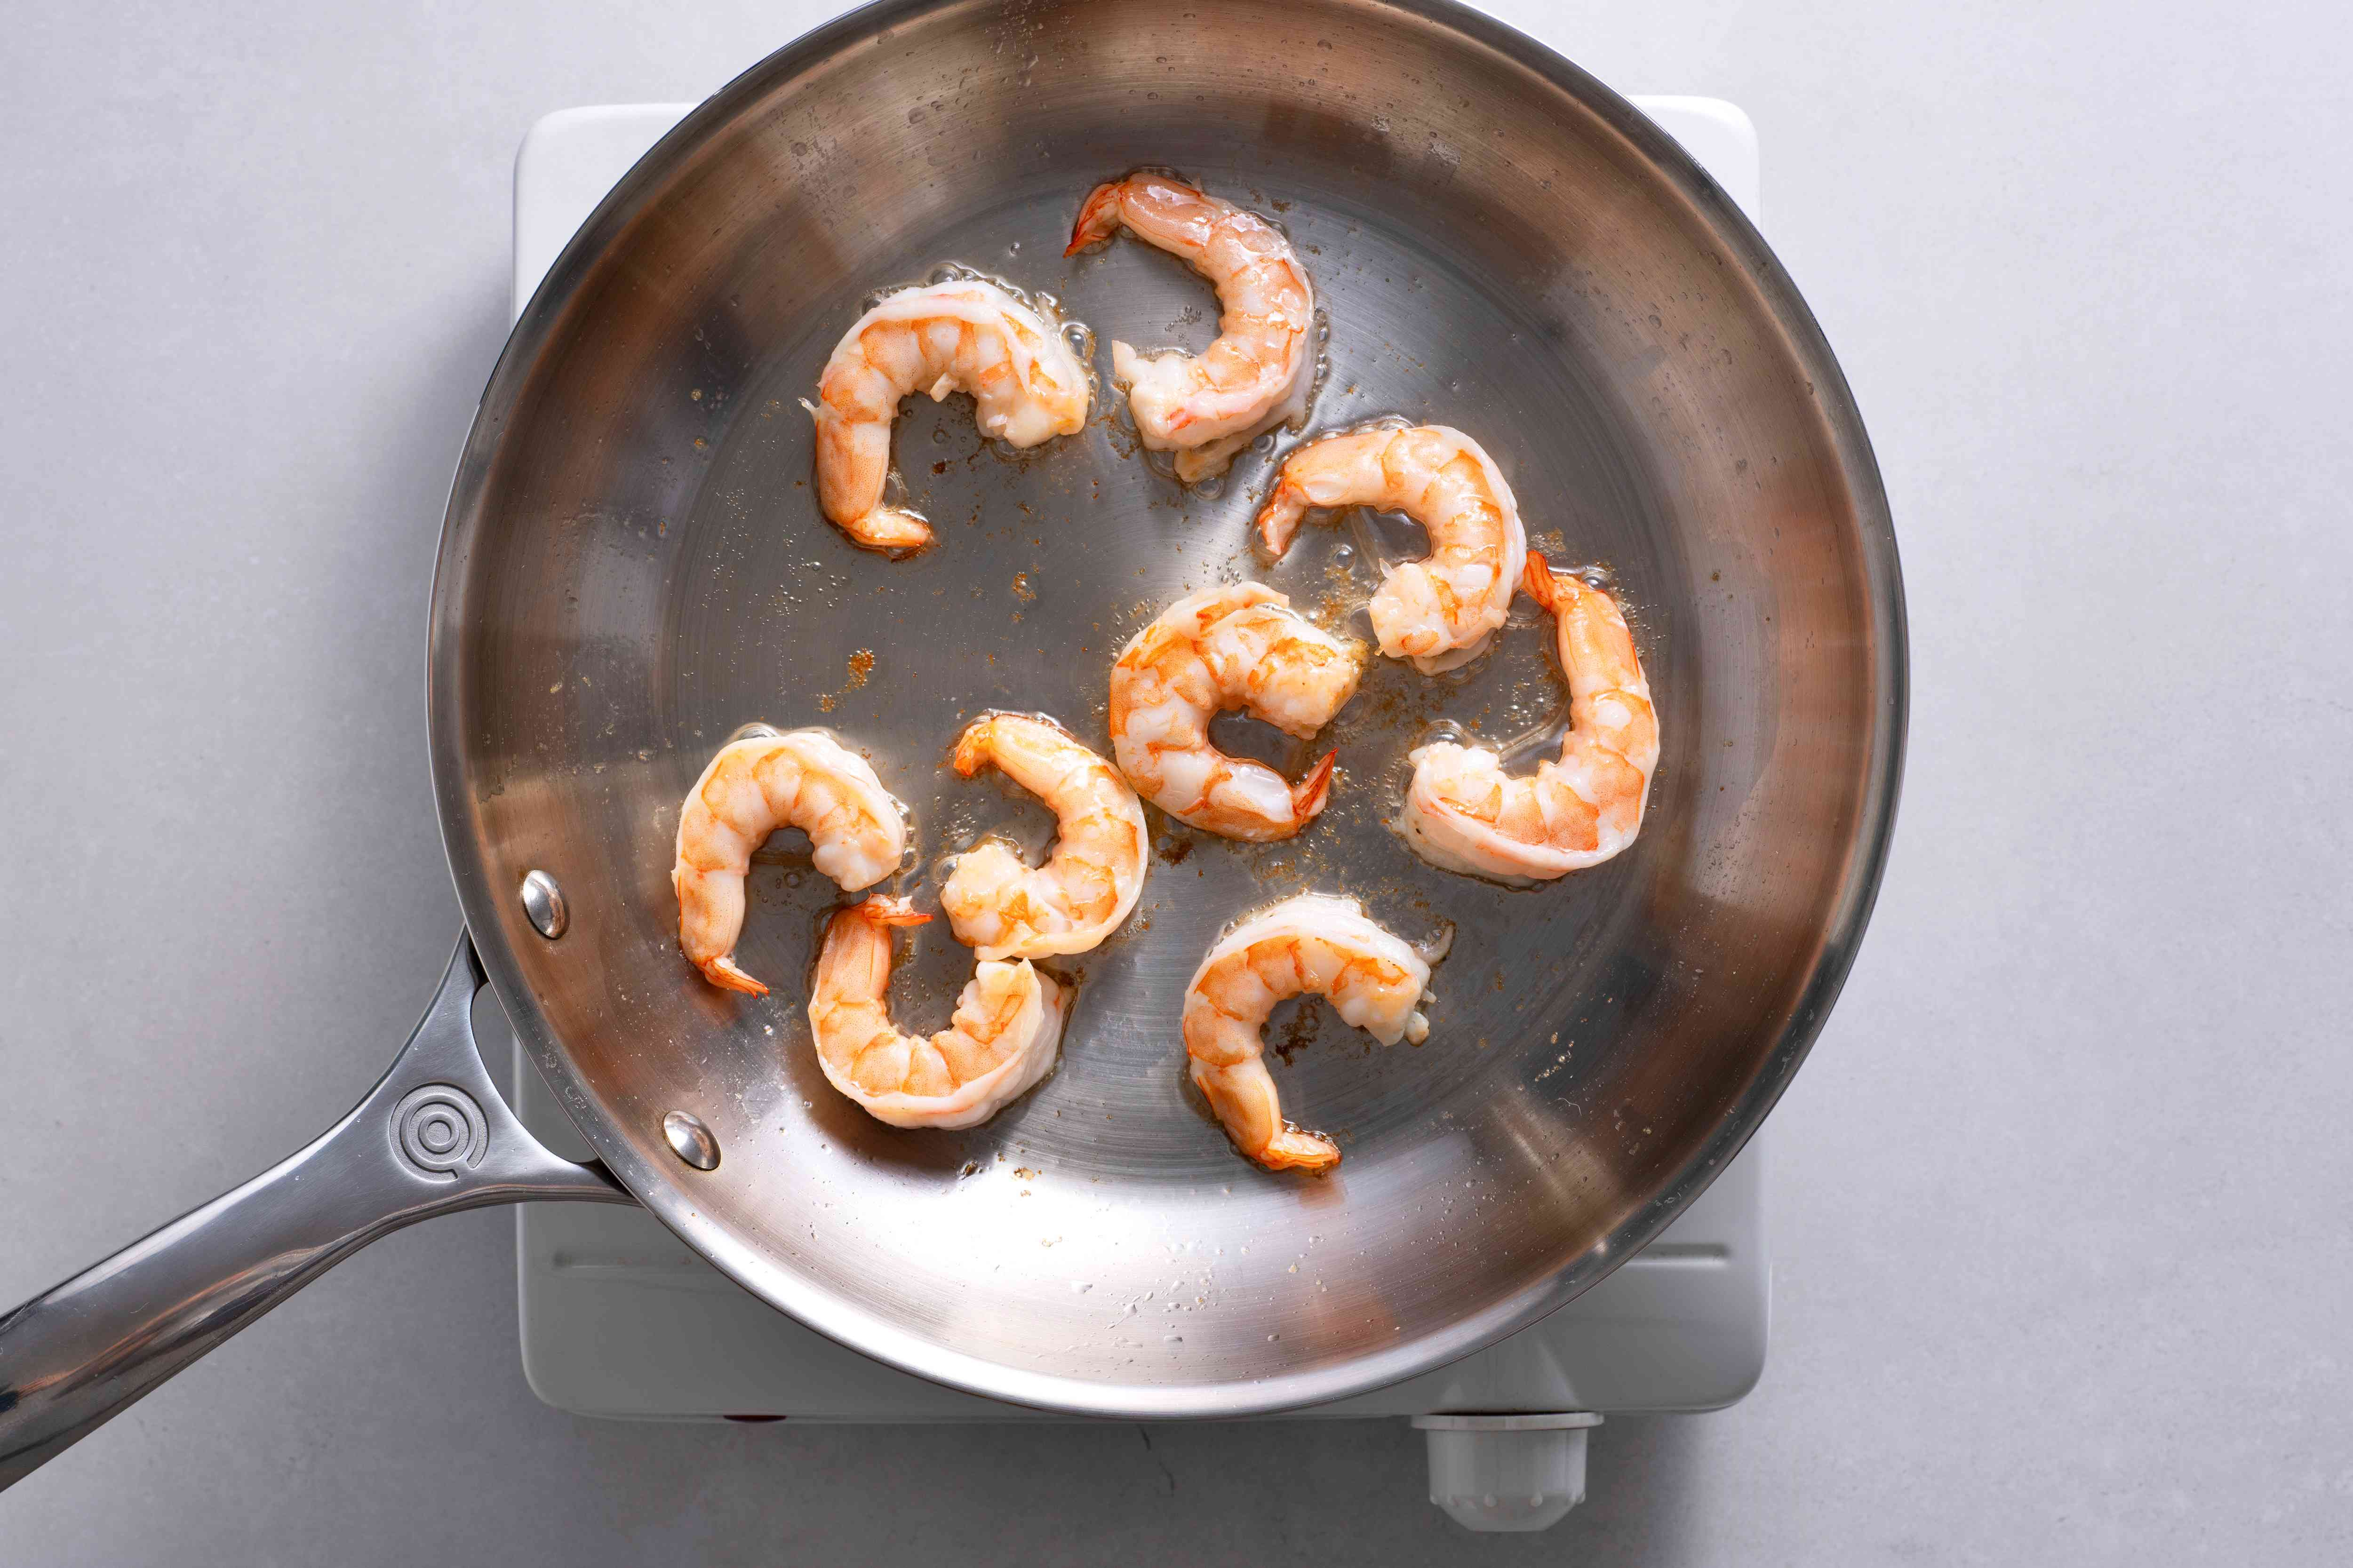 Shrimp cooking in a pan